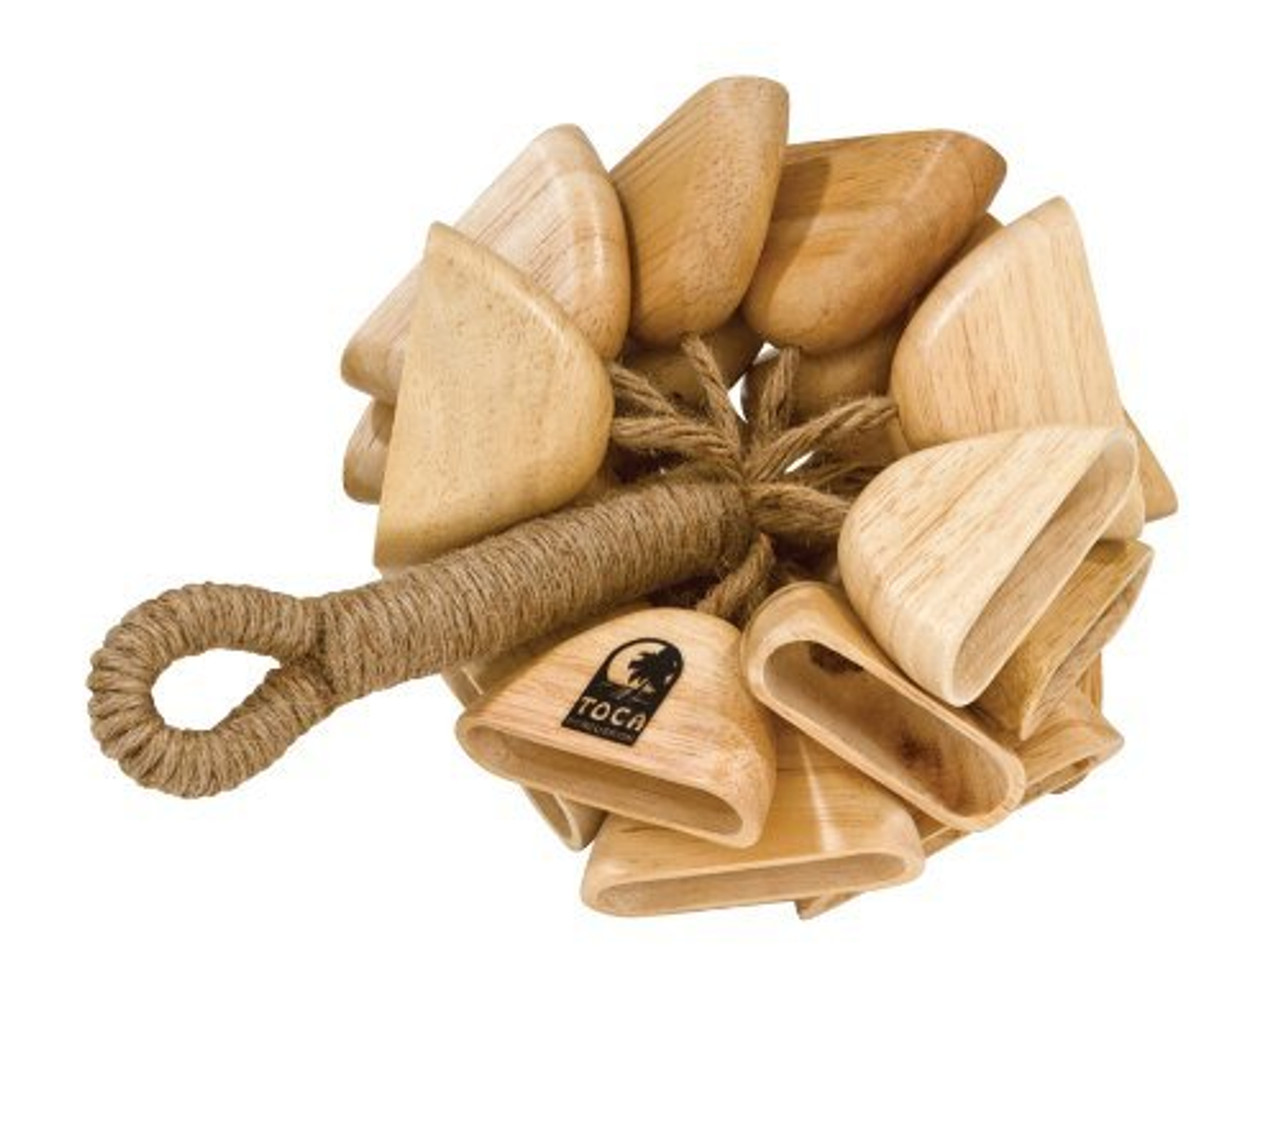 Toca a T-WRH Wooden Rattle with Handle